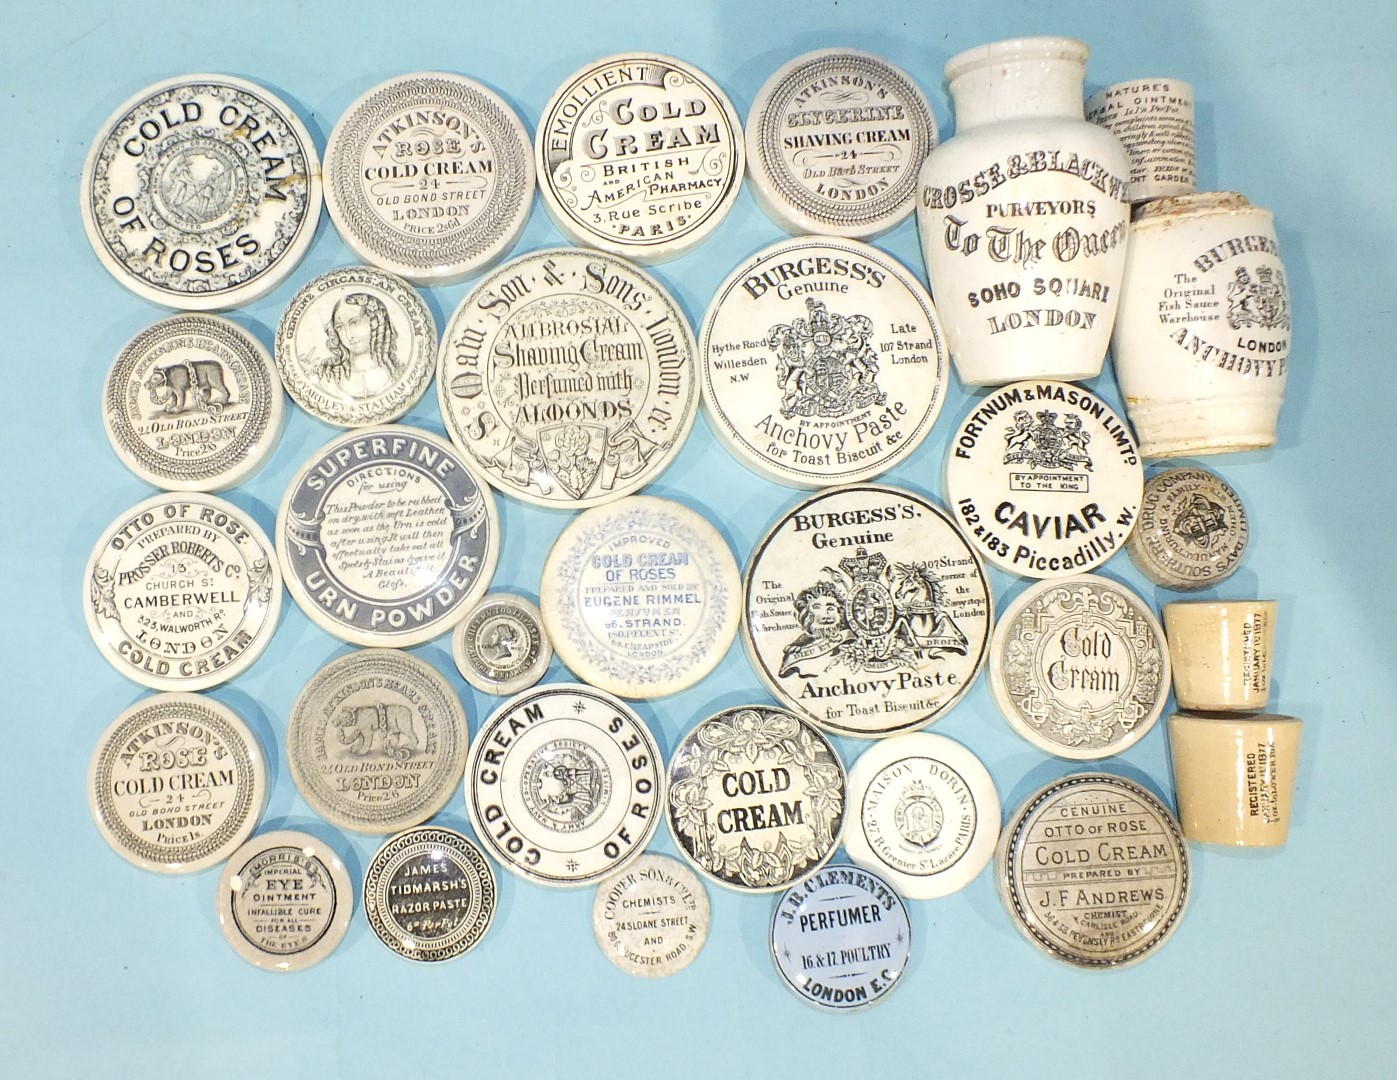 Lot 151 - A 'Burgess's Anchovy Paste' pot lid and twenty-four other 19th century advertising pot lids and